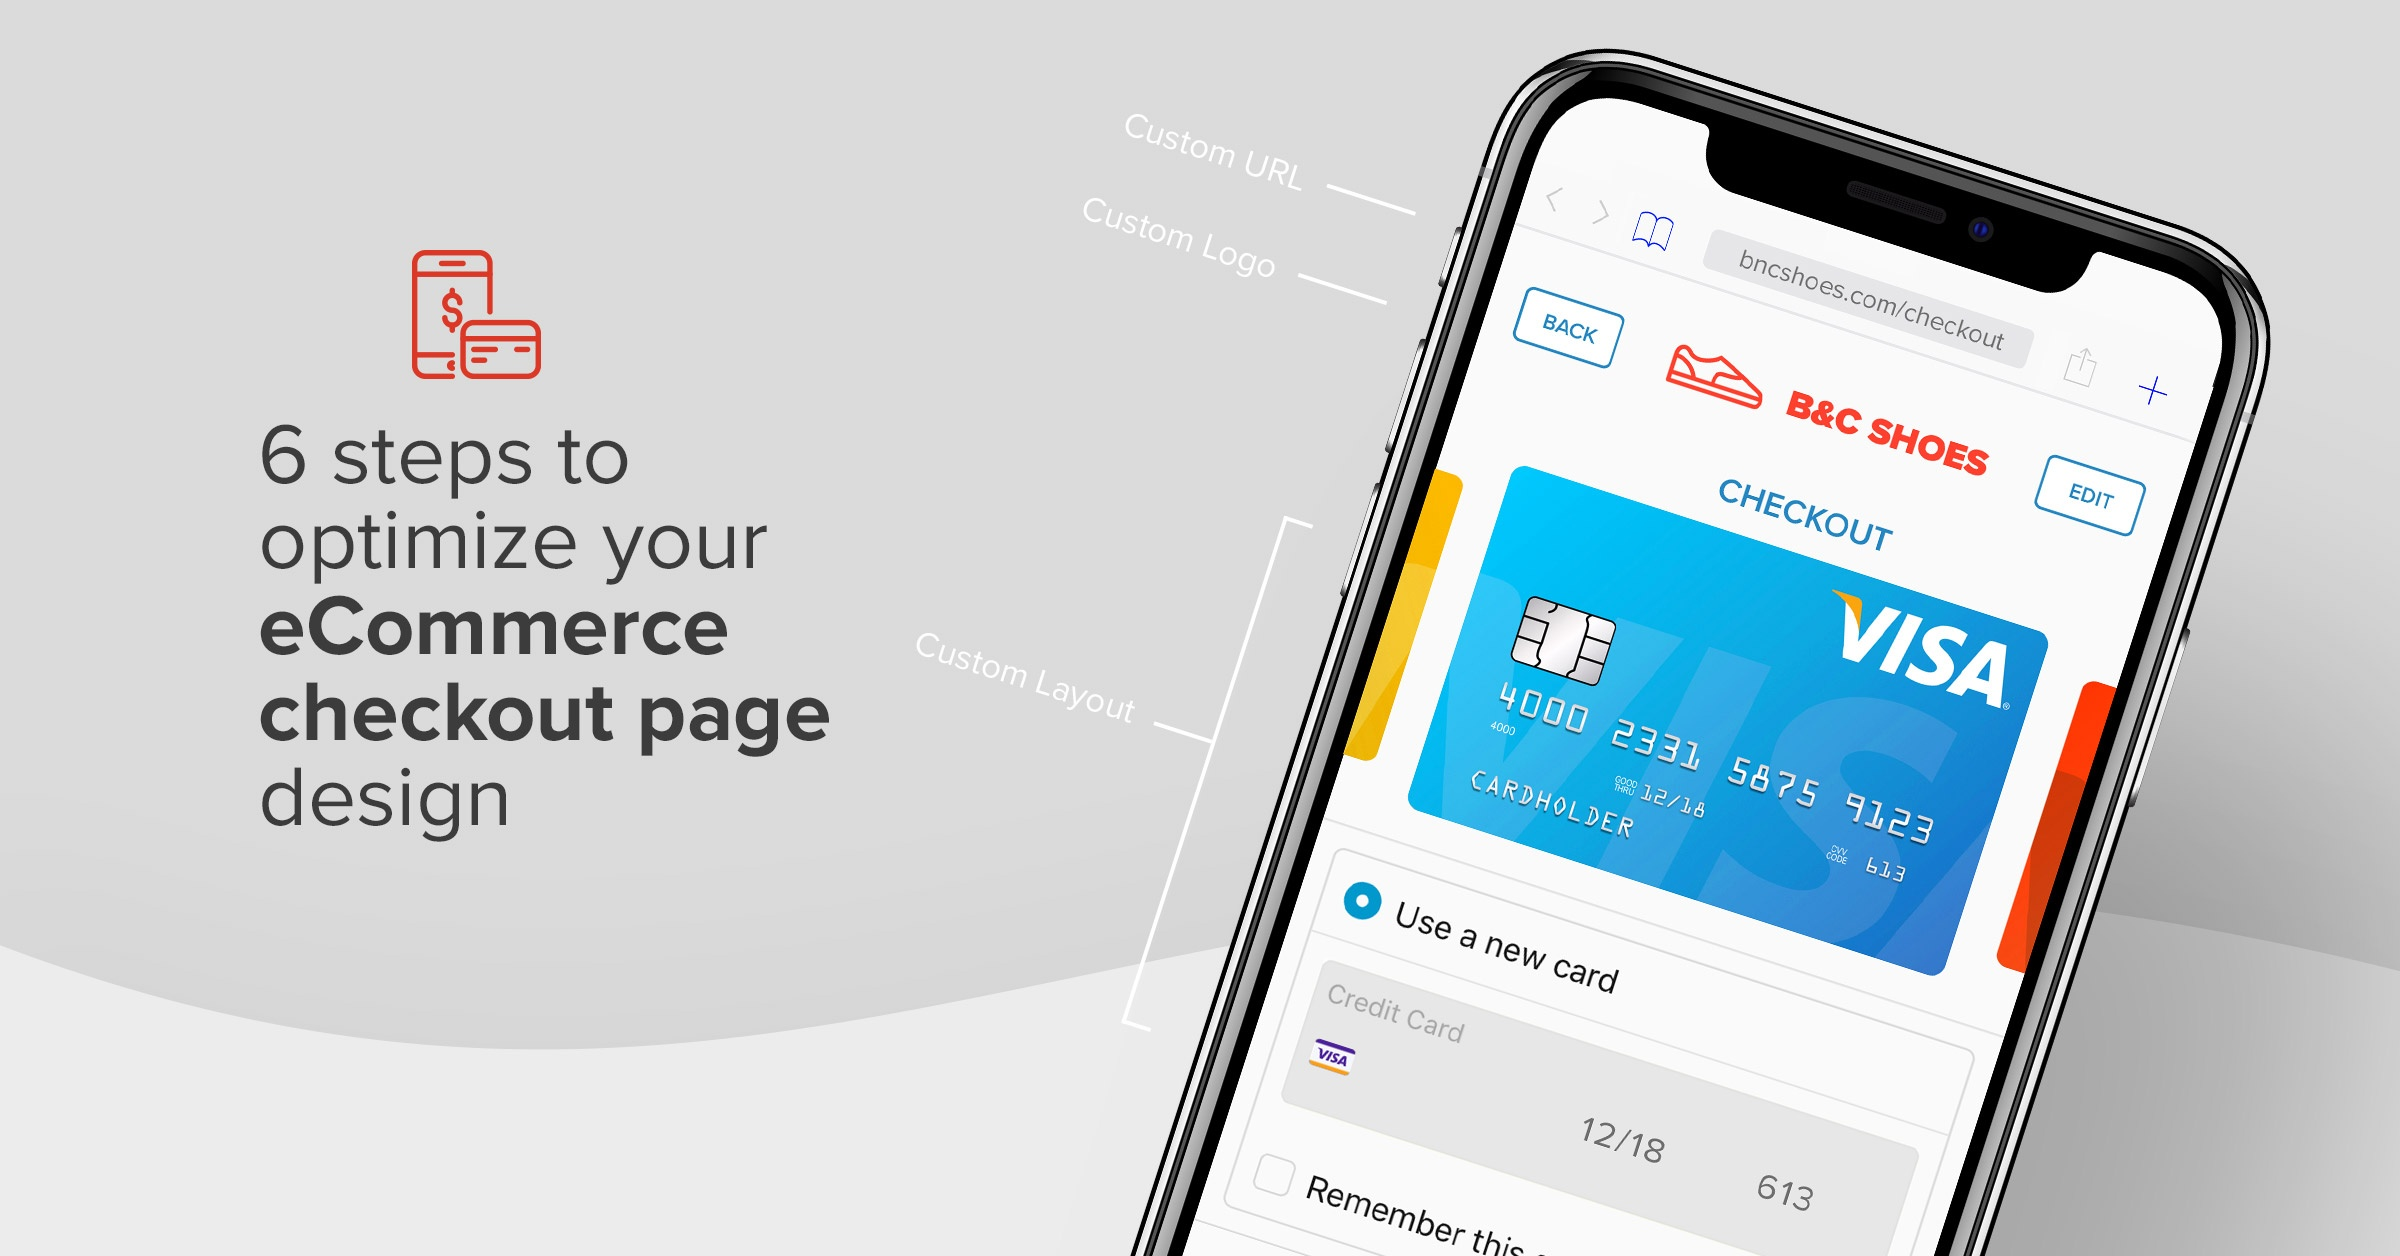 bold-blog-6-steps-to-optimize-your-ecommerce-checkout-page-design